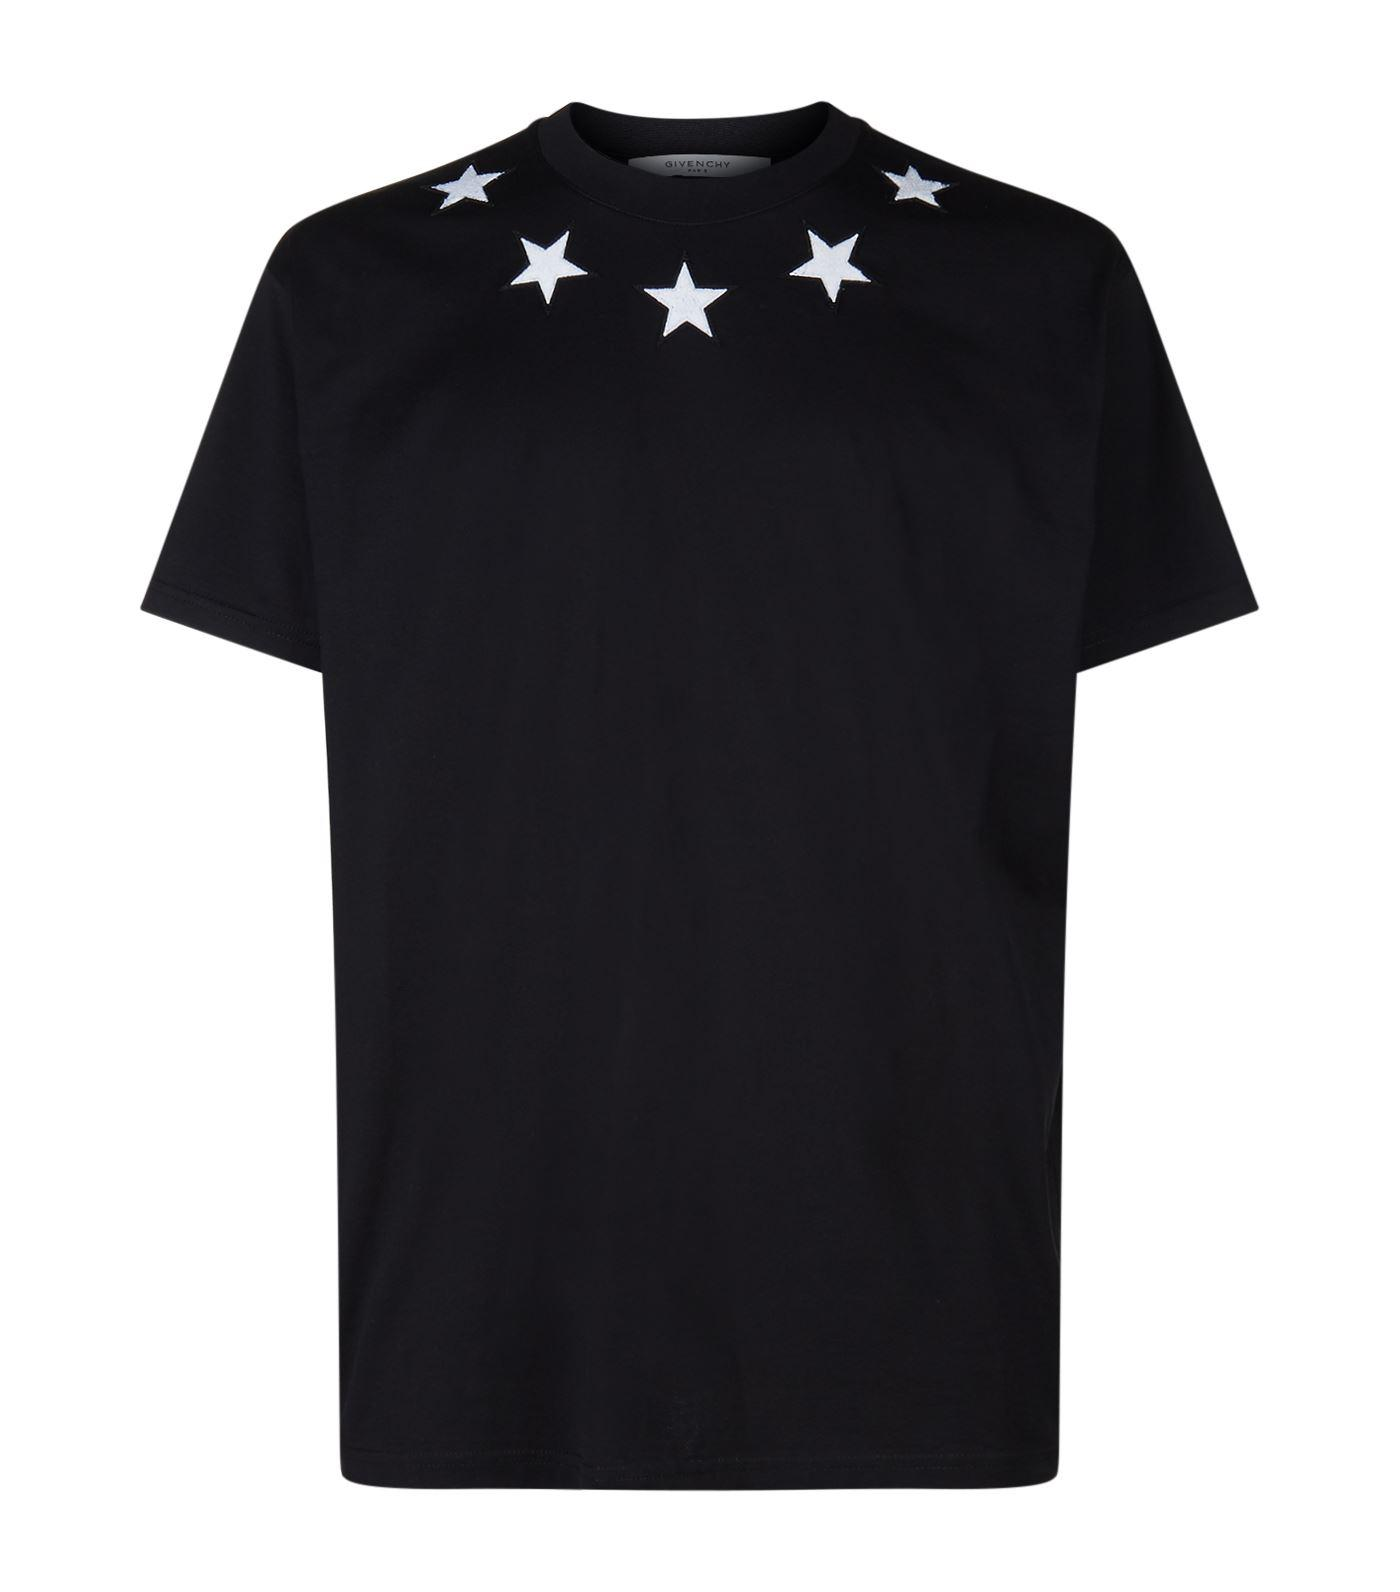 Givenchy star trim t shirt in black for men lyst for Givenchy t shirt man